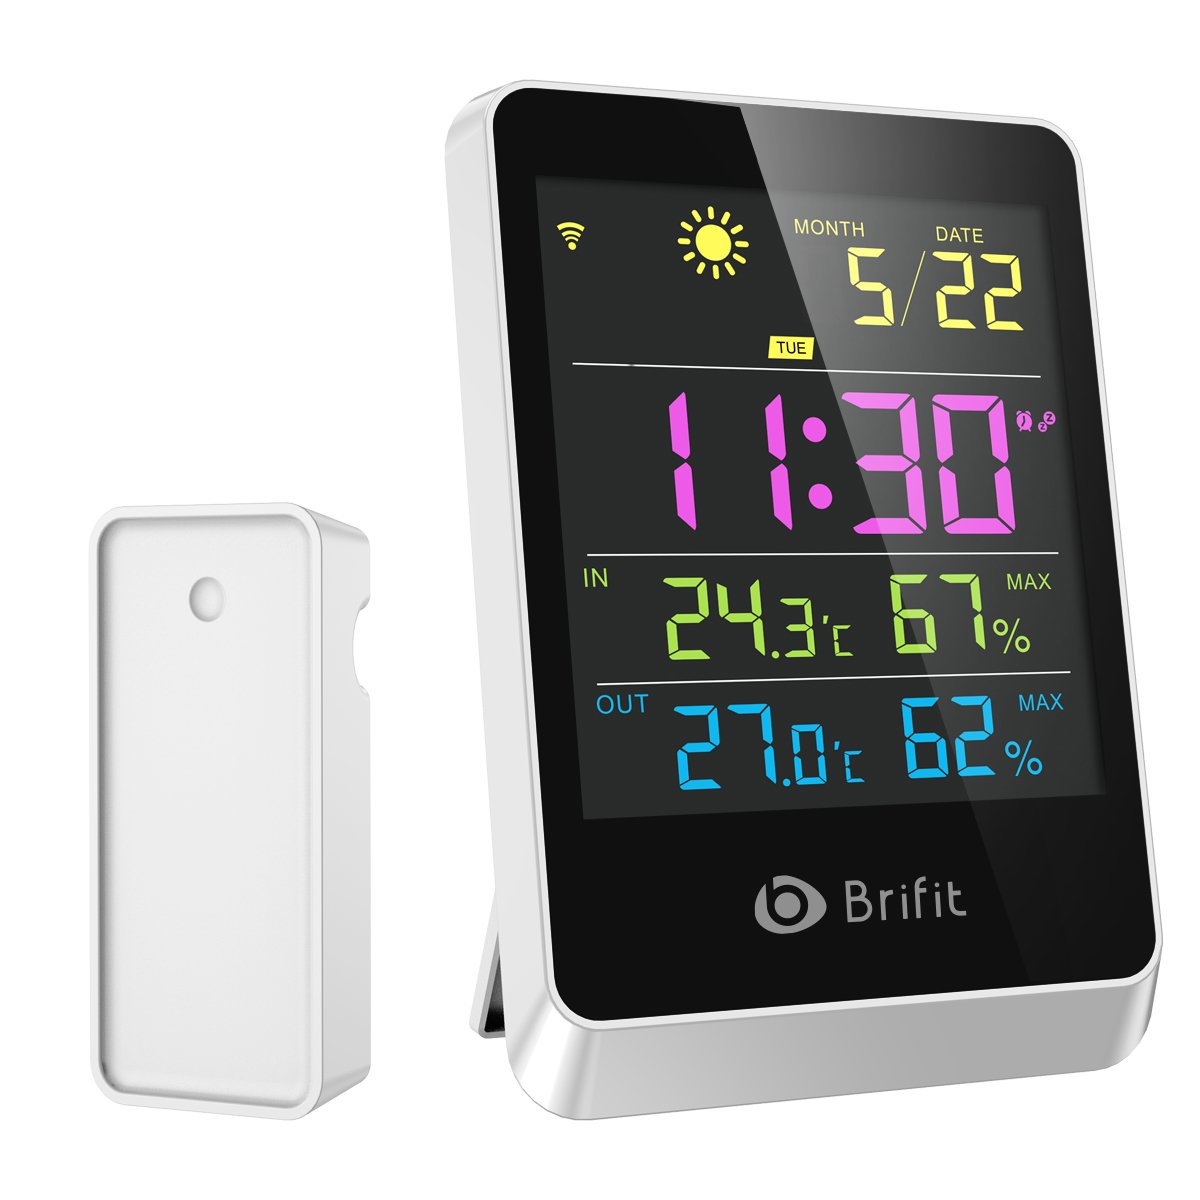 Wireless Hygrometer Indoor Outdoor Thermometer Humidity Monitor, Weather Station, Large Display Digital Tabletop, Weather Forecast, Alarm Clock & Snooze Function for Home, Bedroom